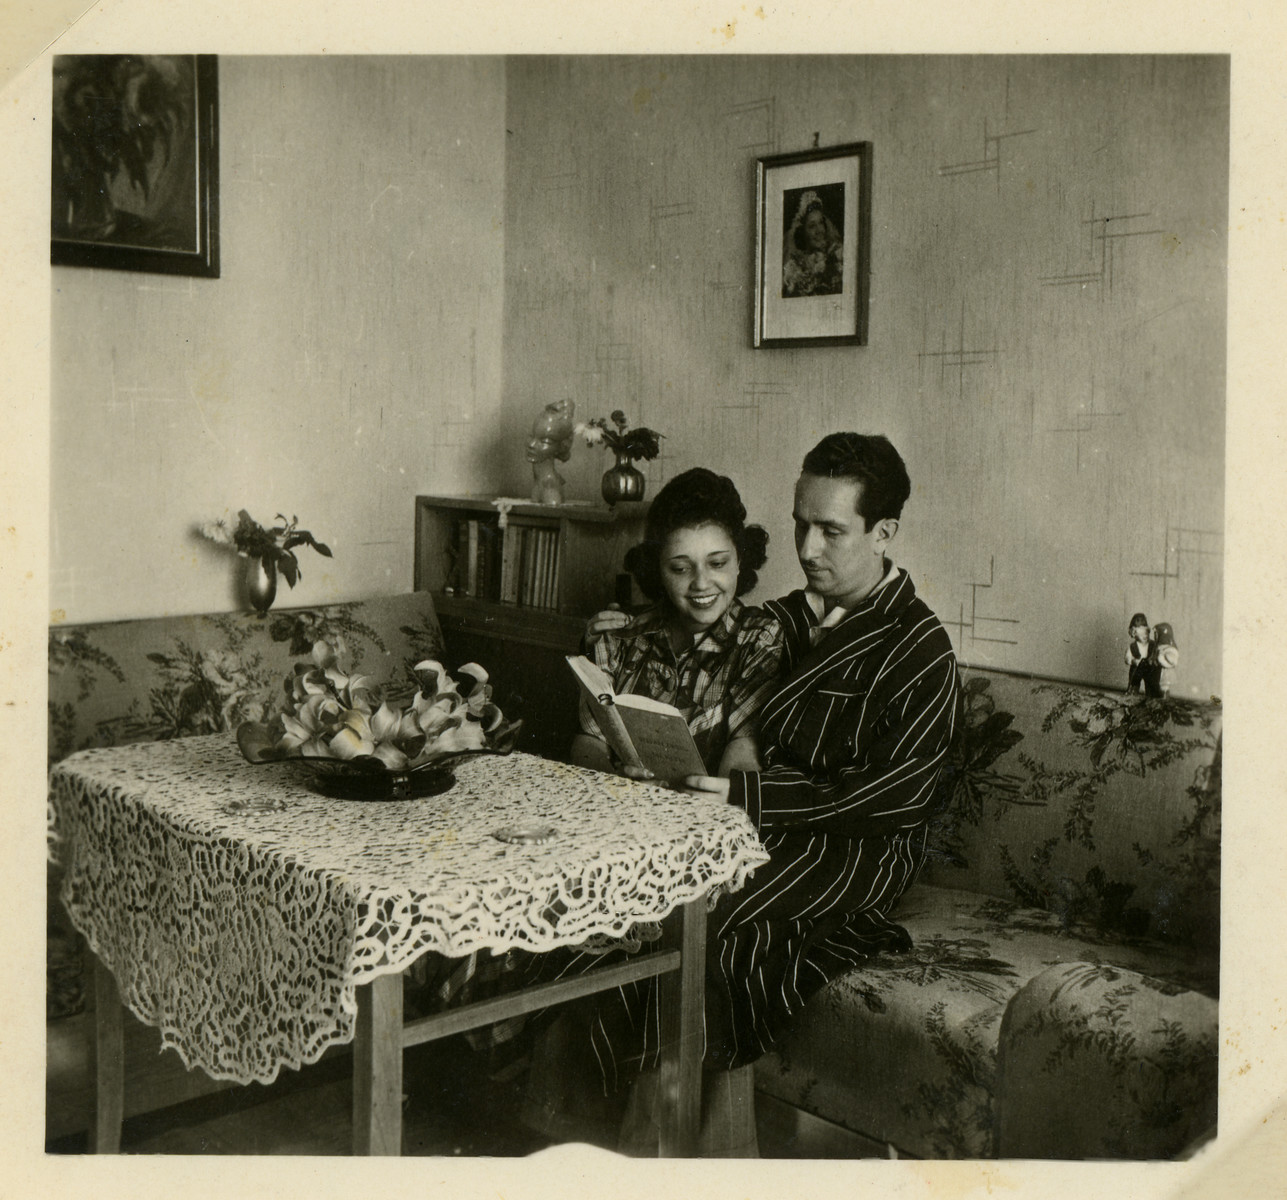 Anna and Lorand Lenji enjoy a book together shortly after their marriage.